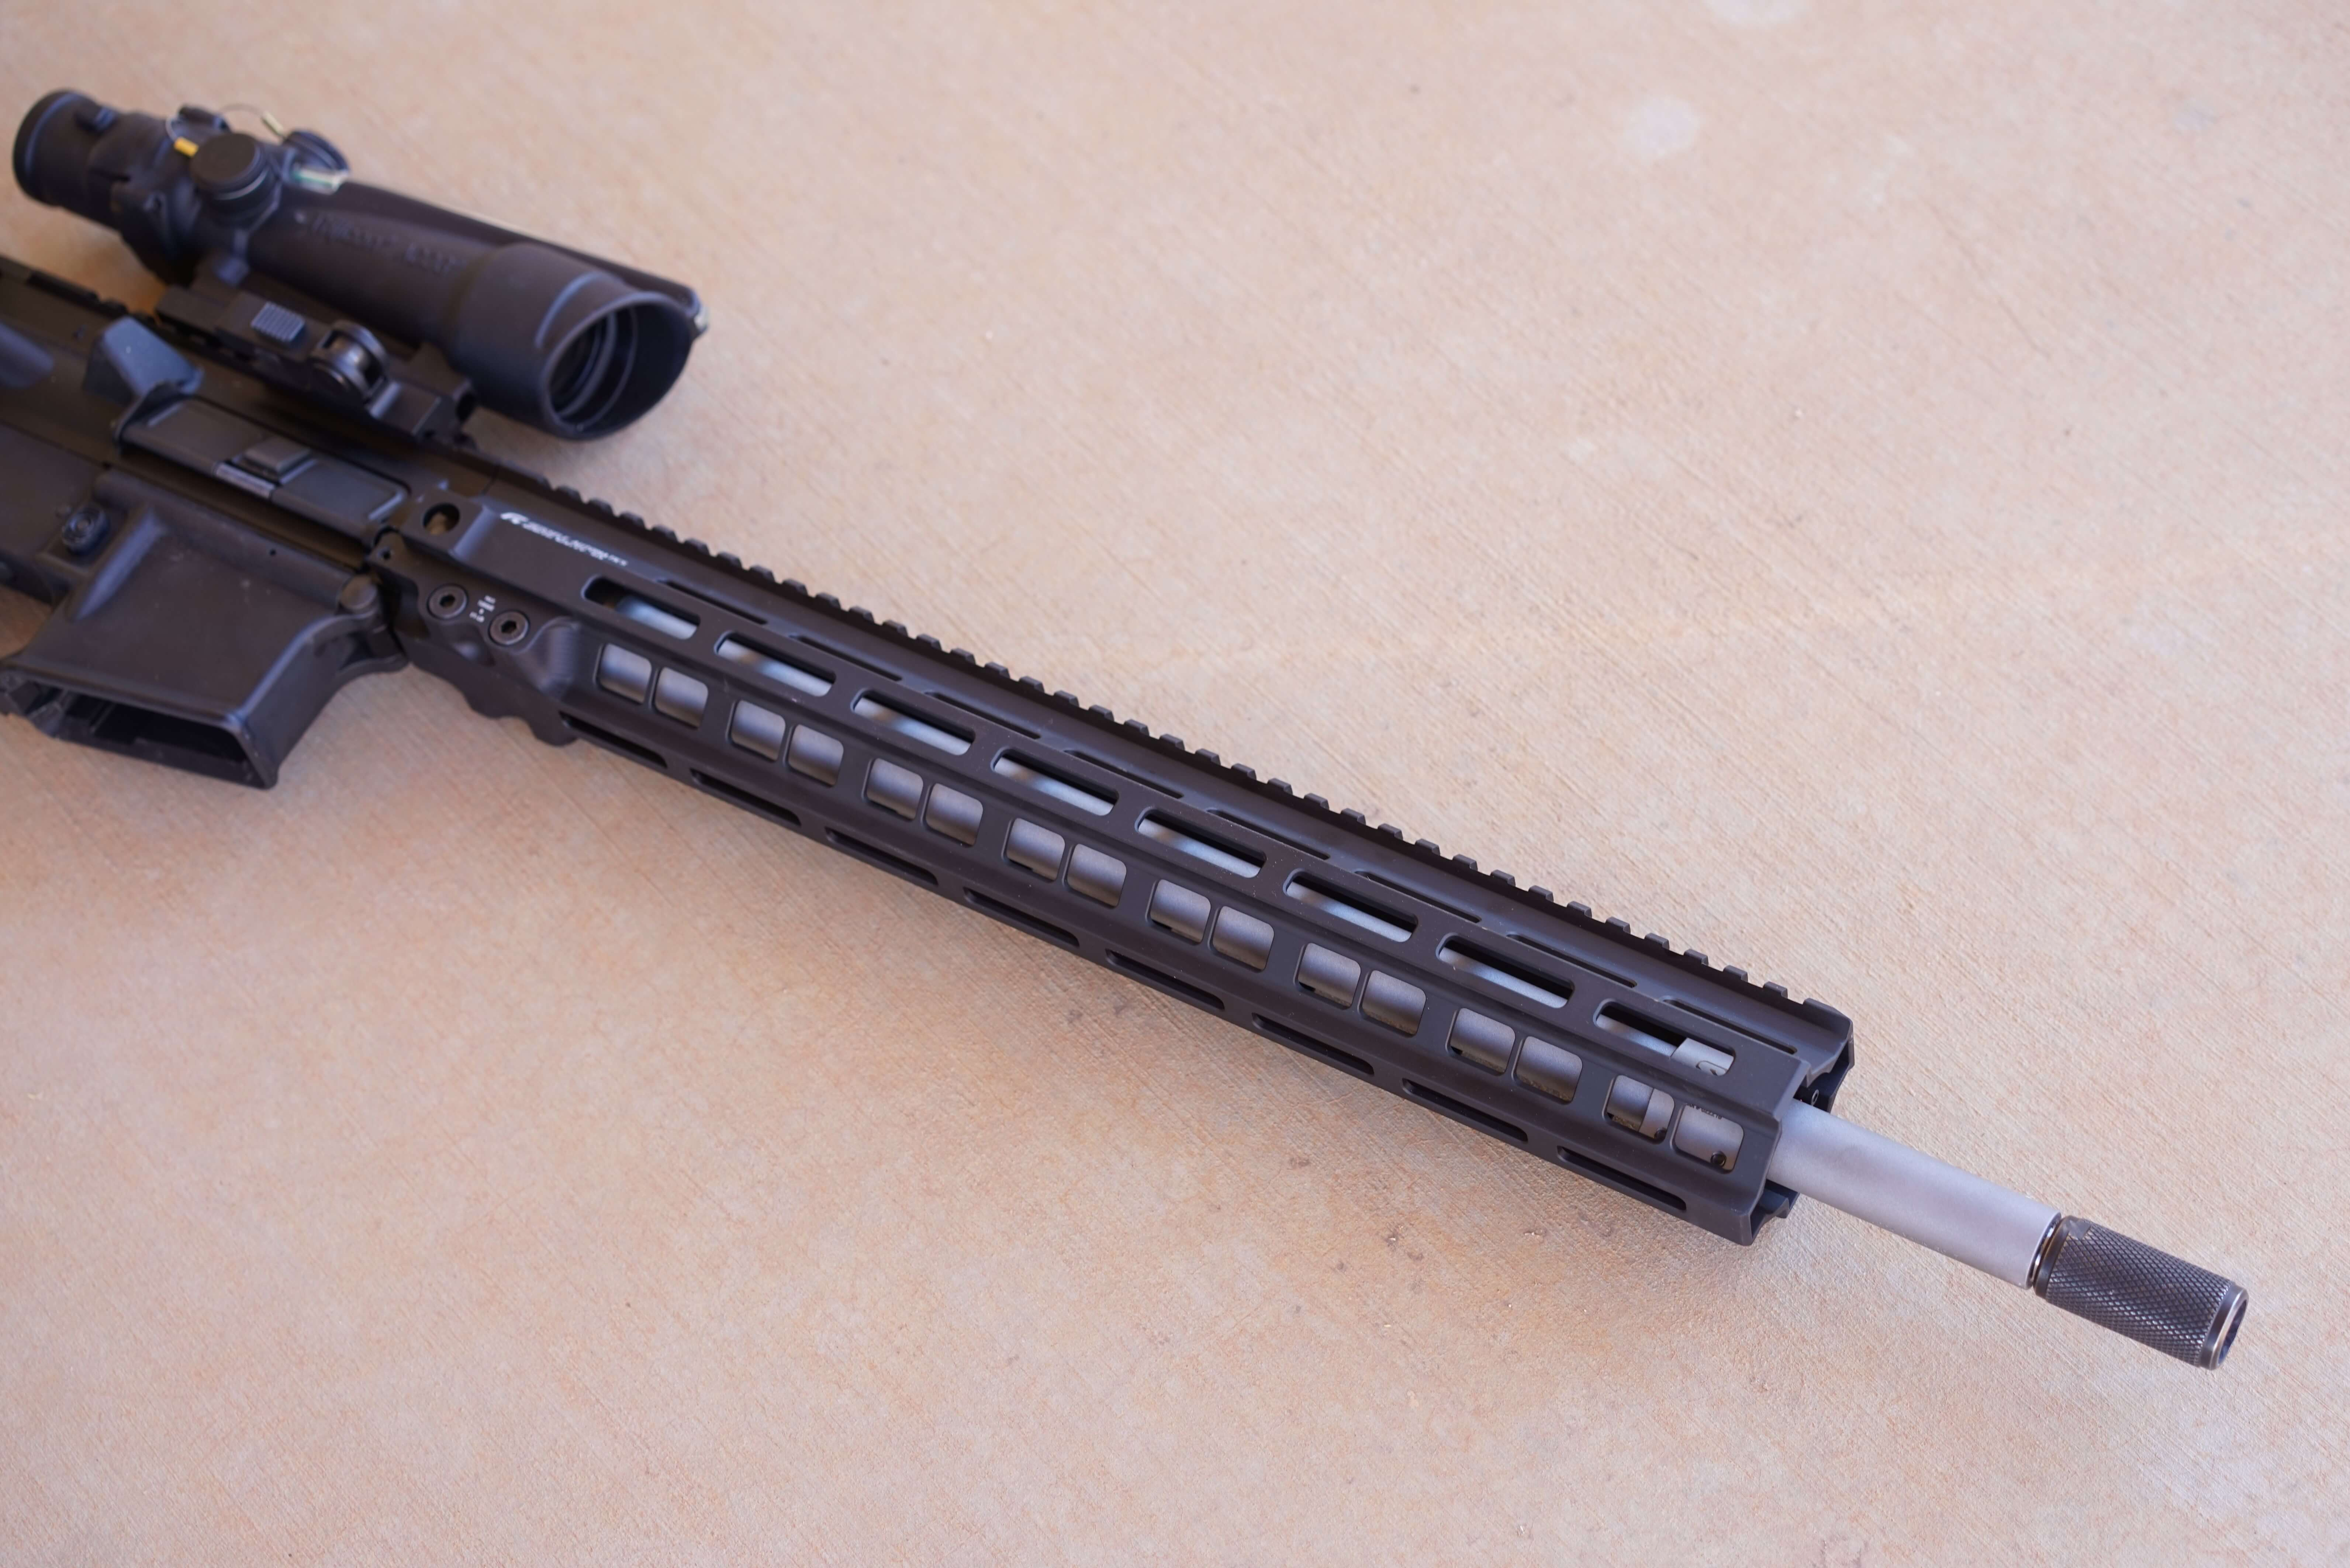 Why the 224 Valkyrie Rifle Caliber Is Awesome - Omaha Outdoors